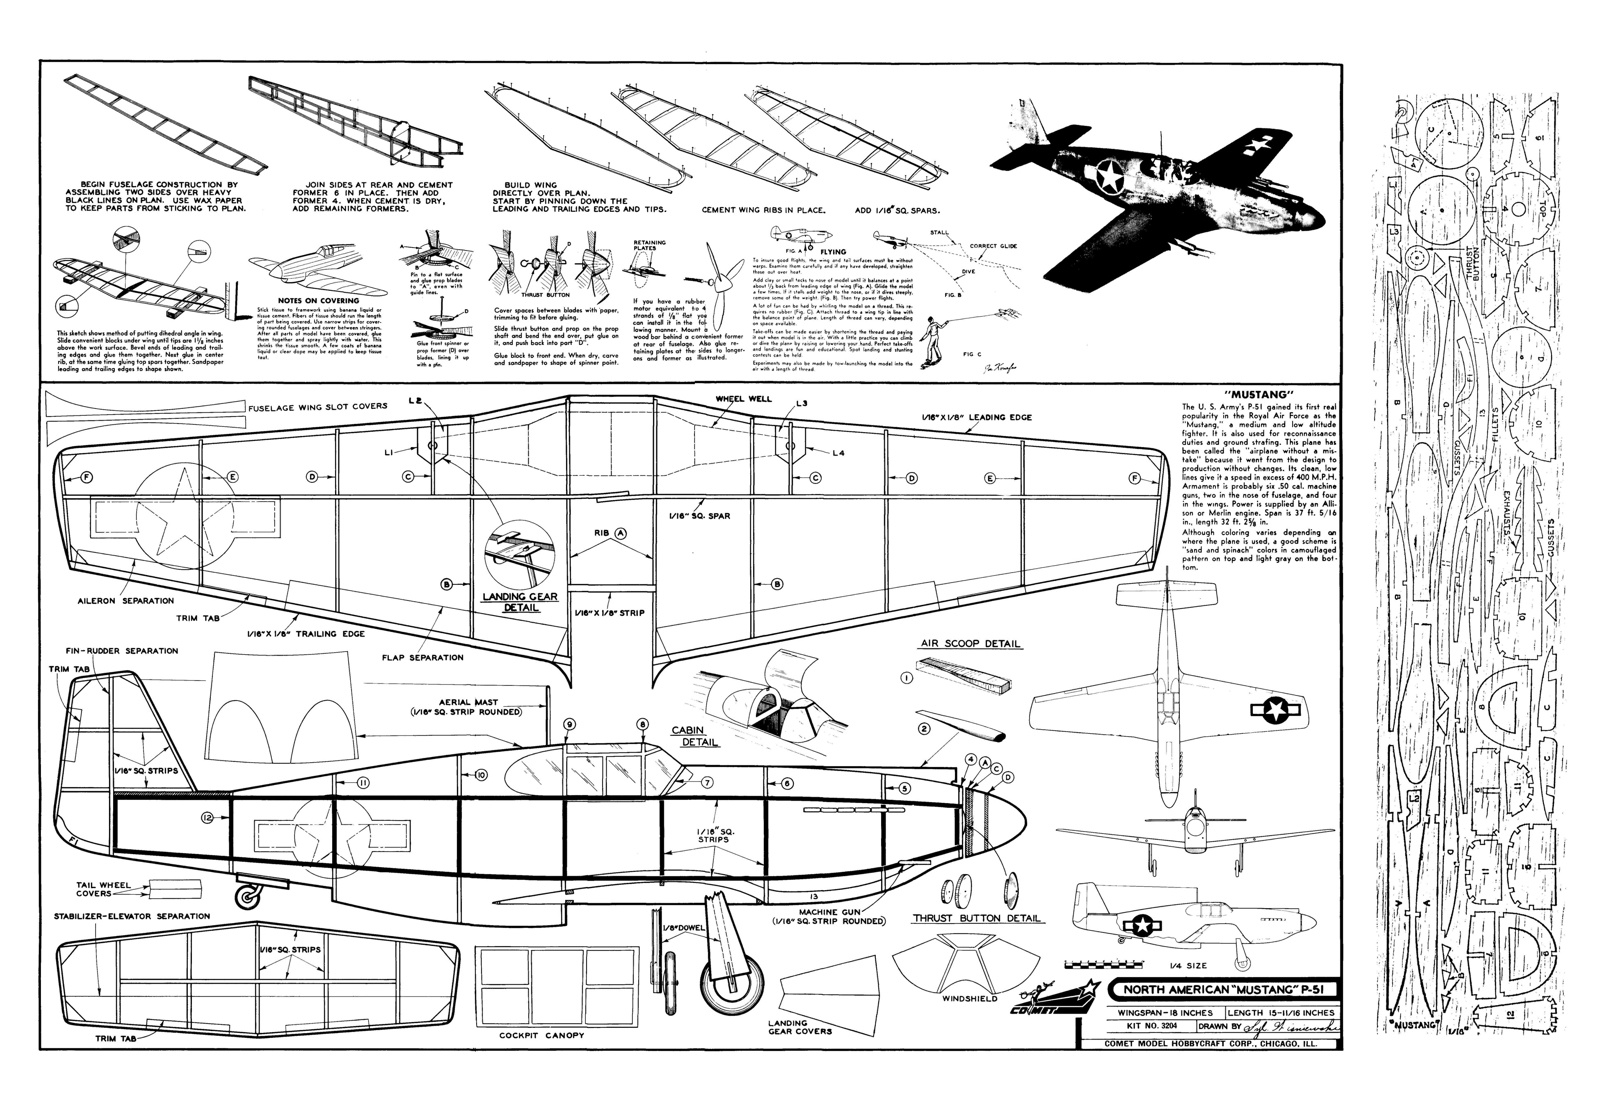 https://0201.nccdn.net/4_2/000/000/038/2d3/Comet_P-51_original_plan-1600x1108.jpg